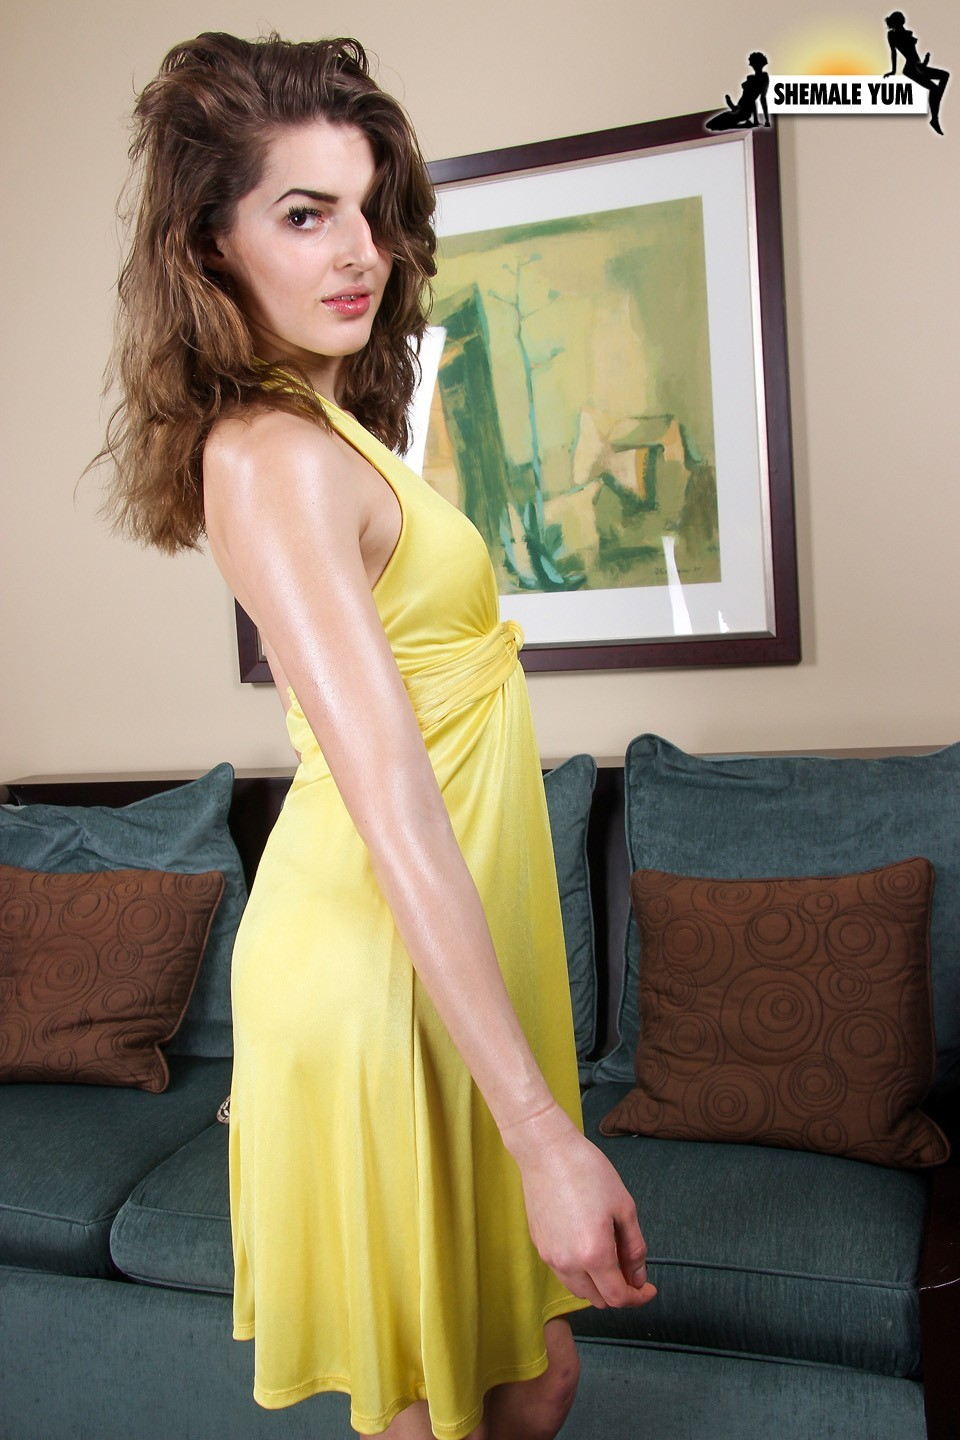 vixxen goddess ruined in yummy yellow skirt